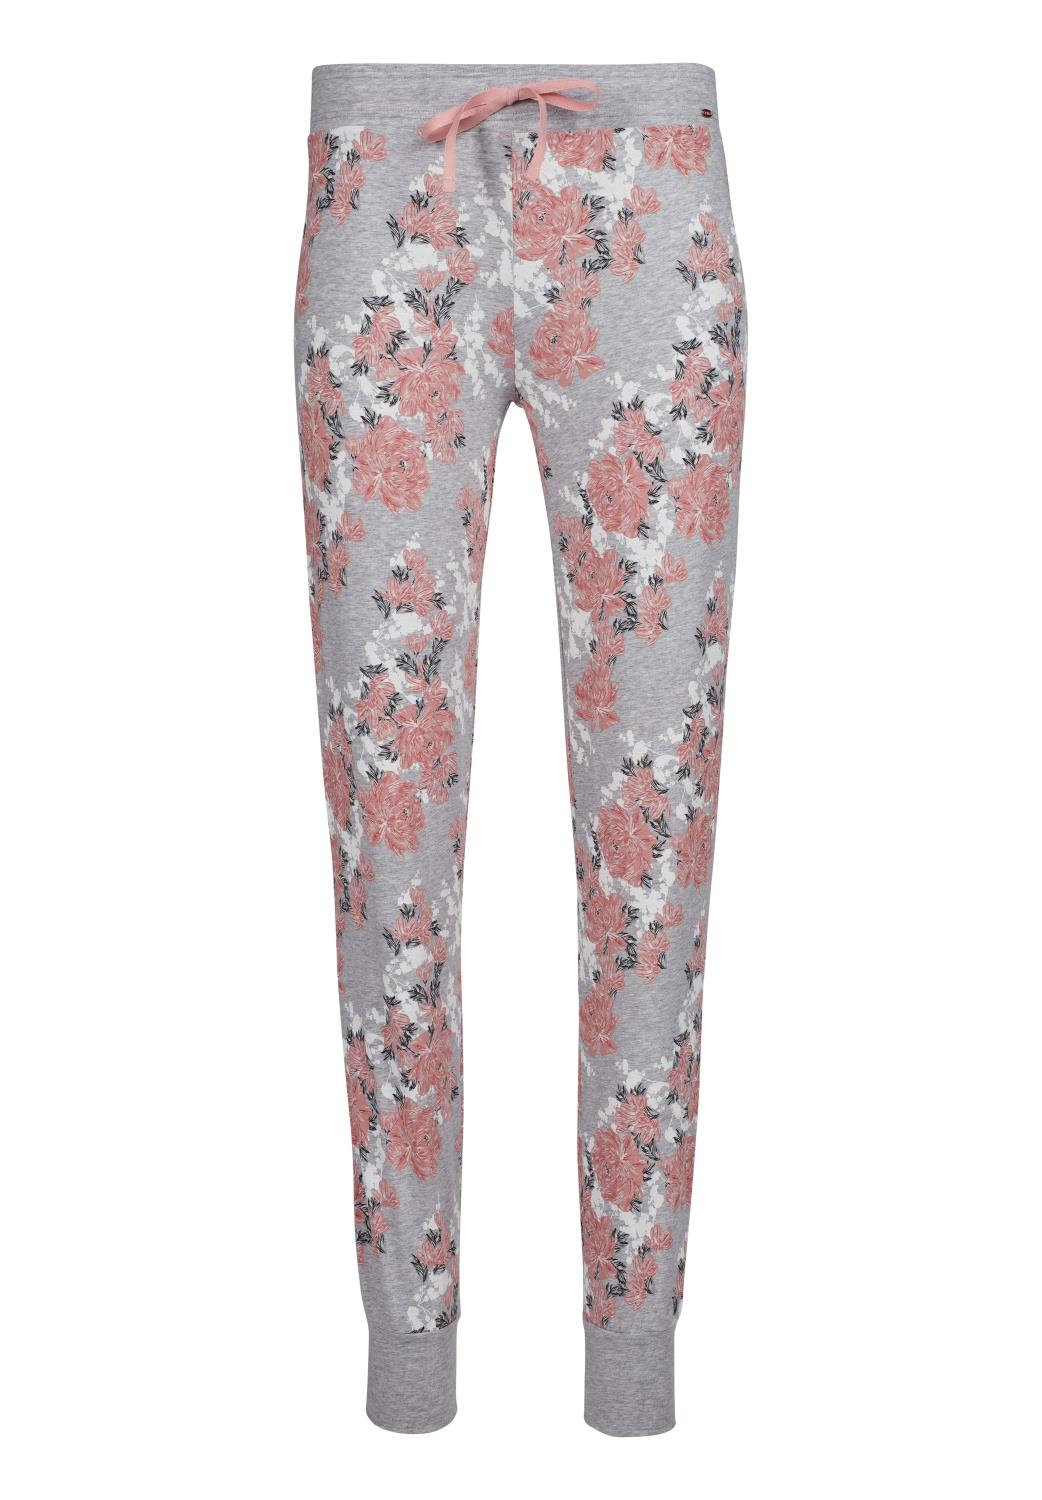 Skiny L. pants long, sleep & dream, rose flower